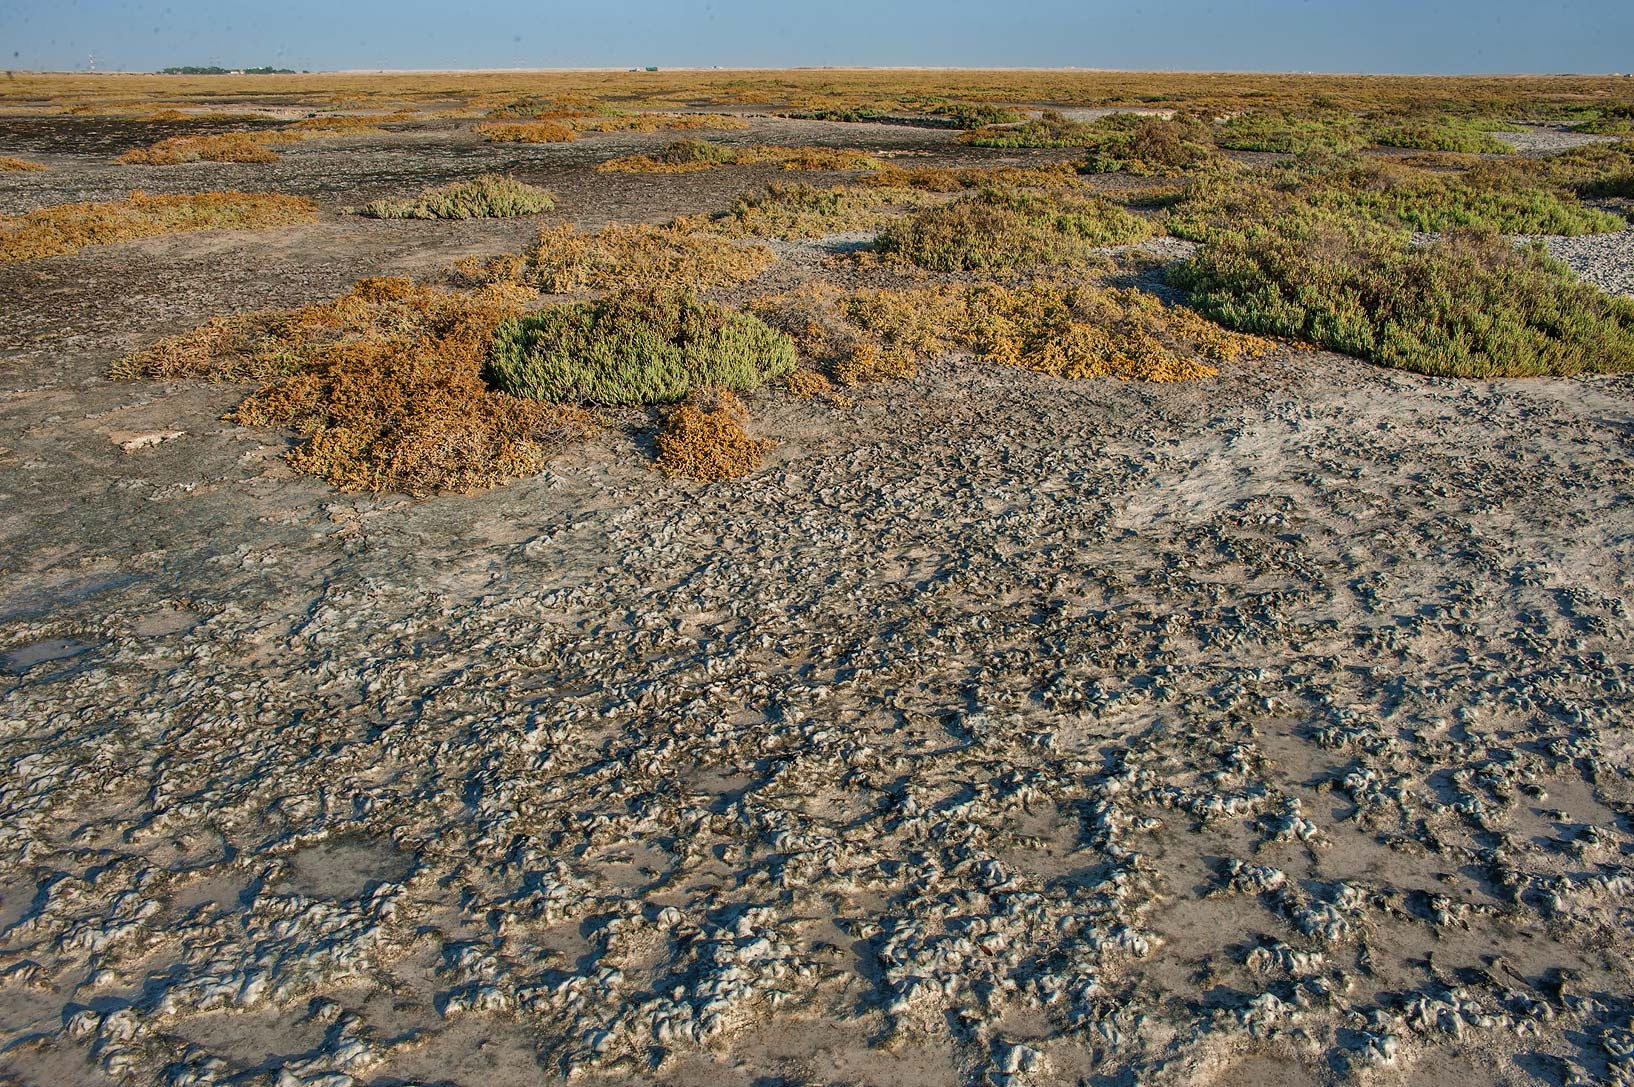 Salt marsh with cyanobacterial mats near Al Thakira. Qatar